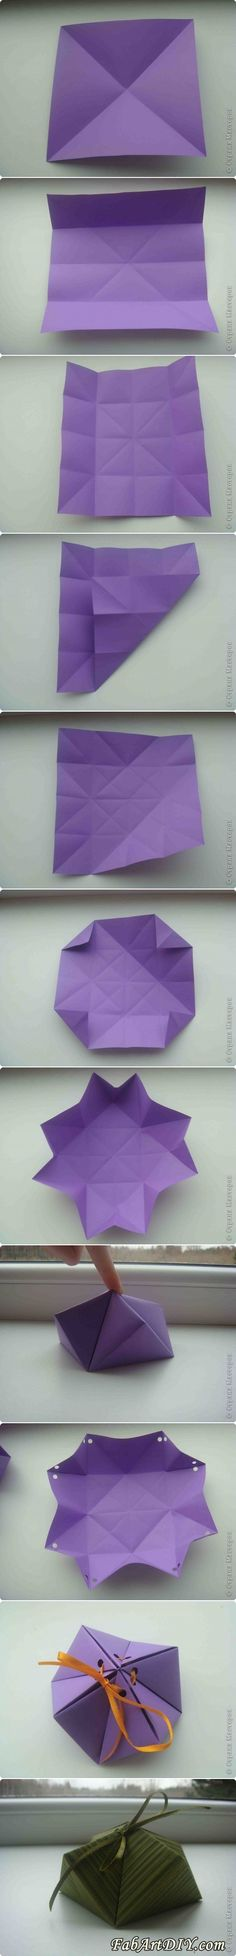 Gift Boxes - Origami box with lid paper diy gifts 59 Trendy ideas Origami Box With Lid, Origami Gift Box, Diy Gift Box, Paper Gift Box, Diy Box, Paper Gifts, Diy Gifts, Gift Boxes, Diy Origami